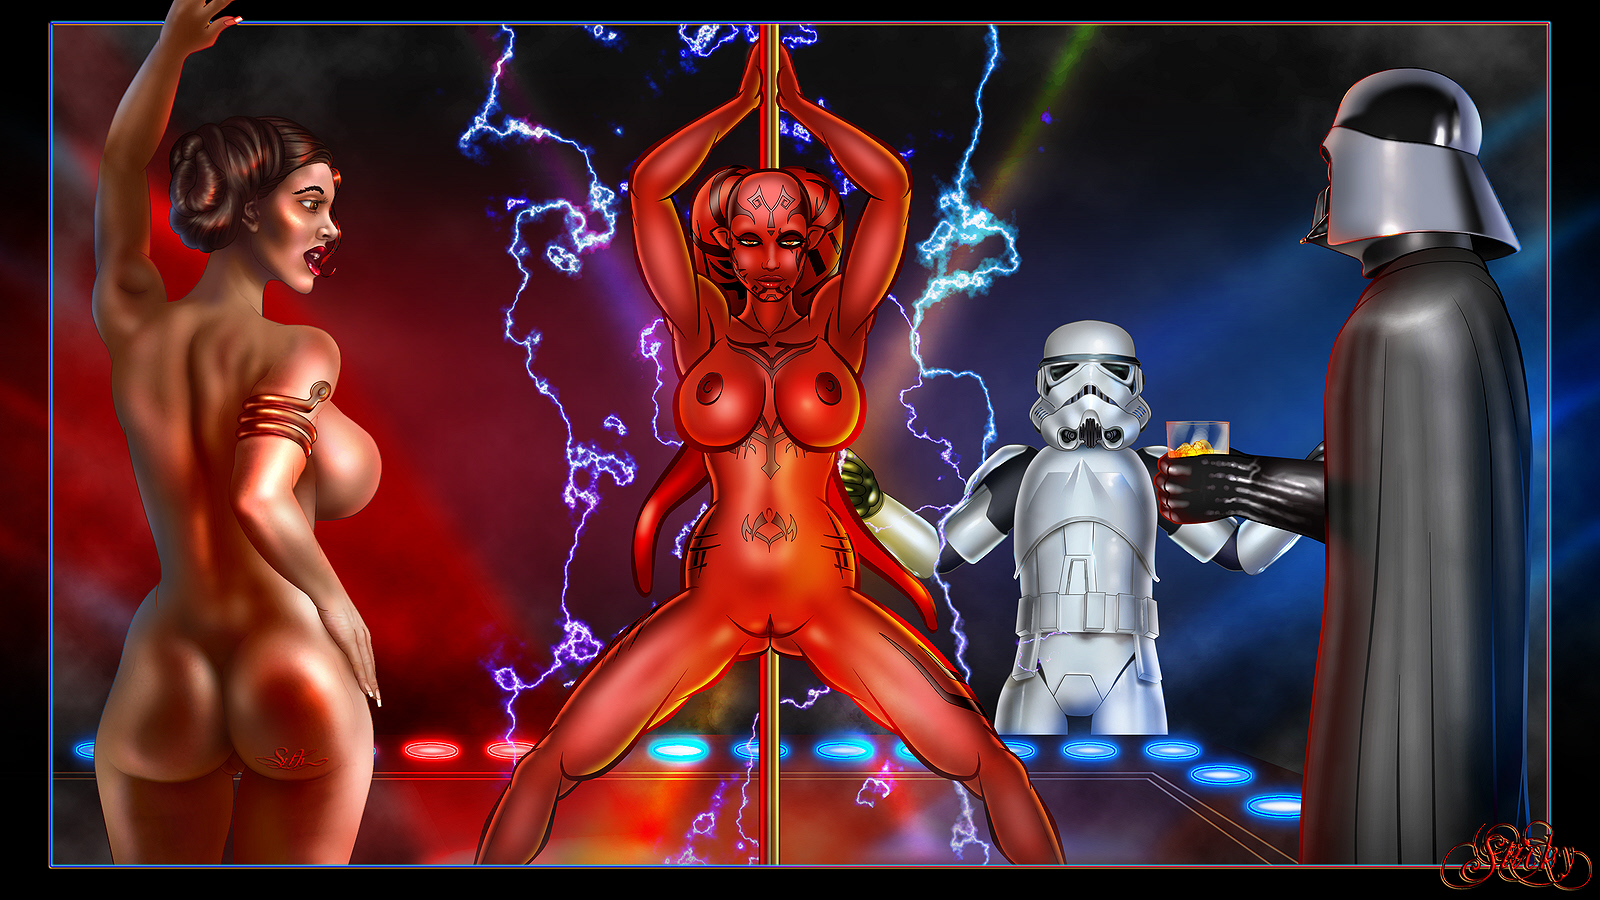 Nude pictures of women as star wars nude scene